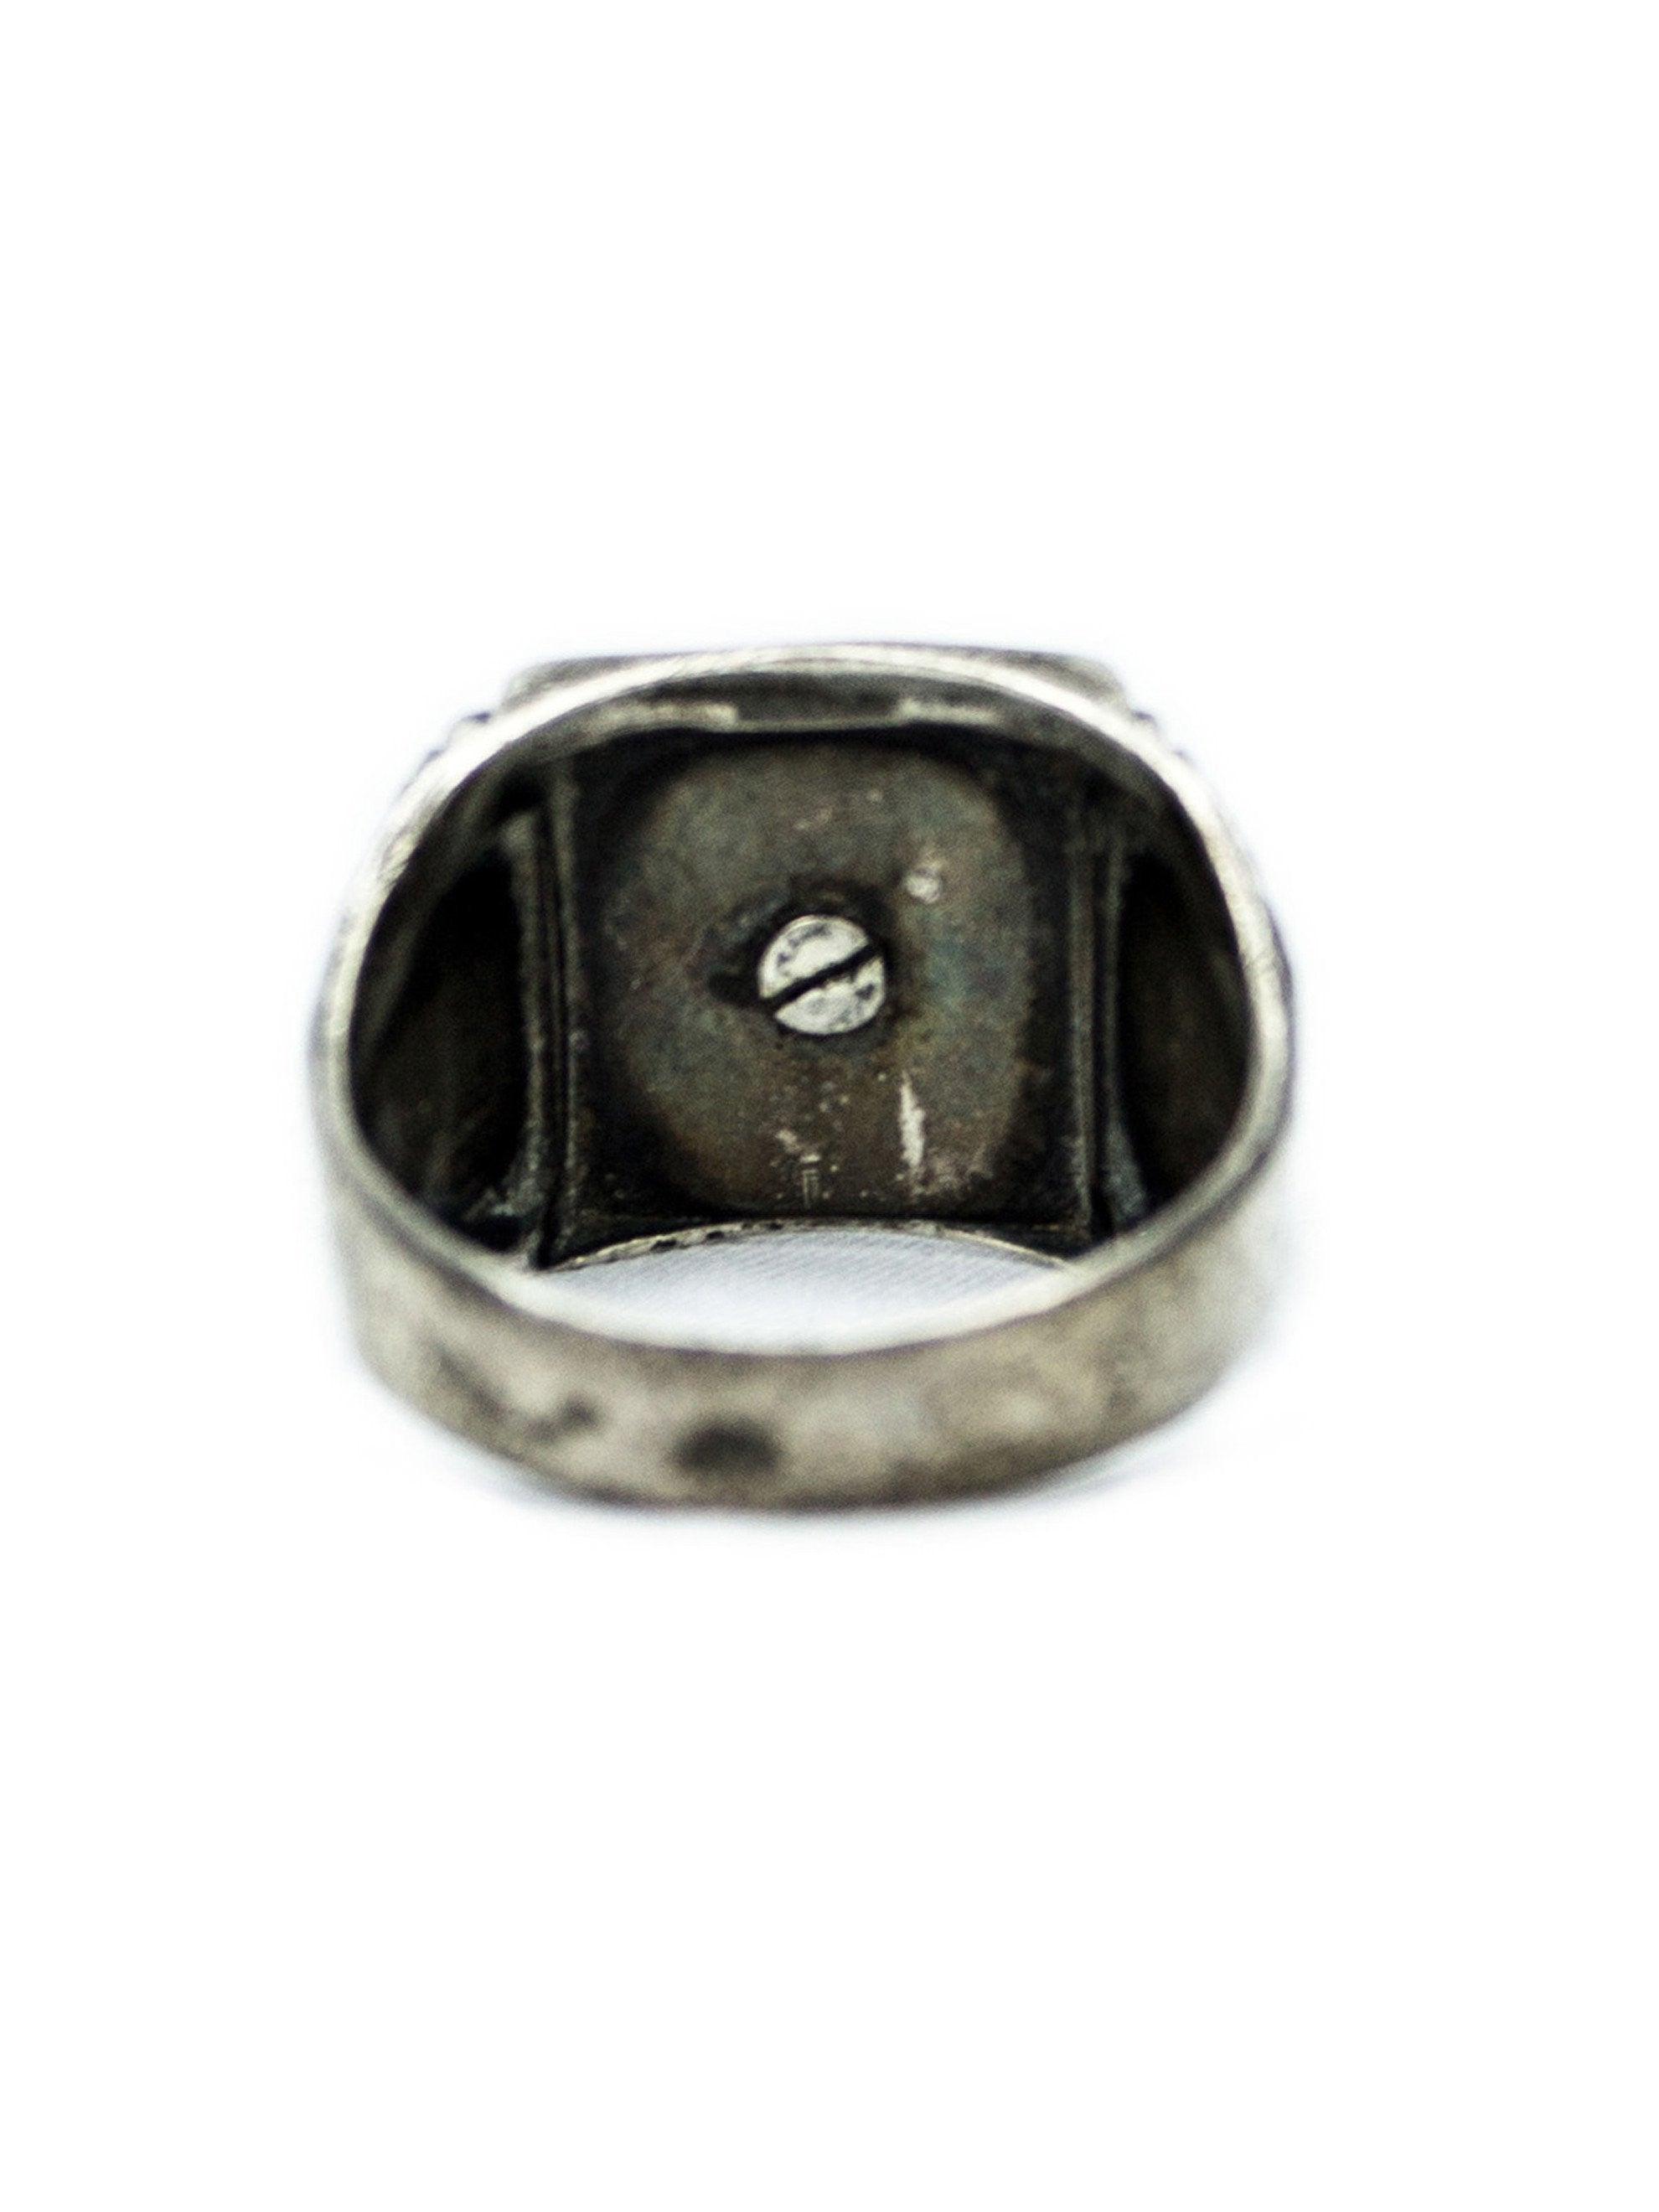 10.25 Vintage 1930's Sterling Silver Archer Ring 3